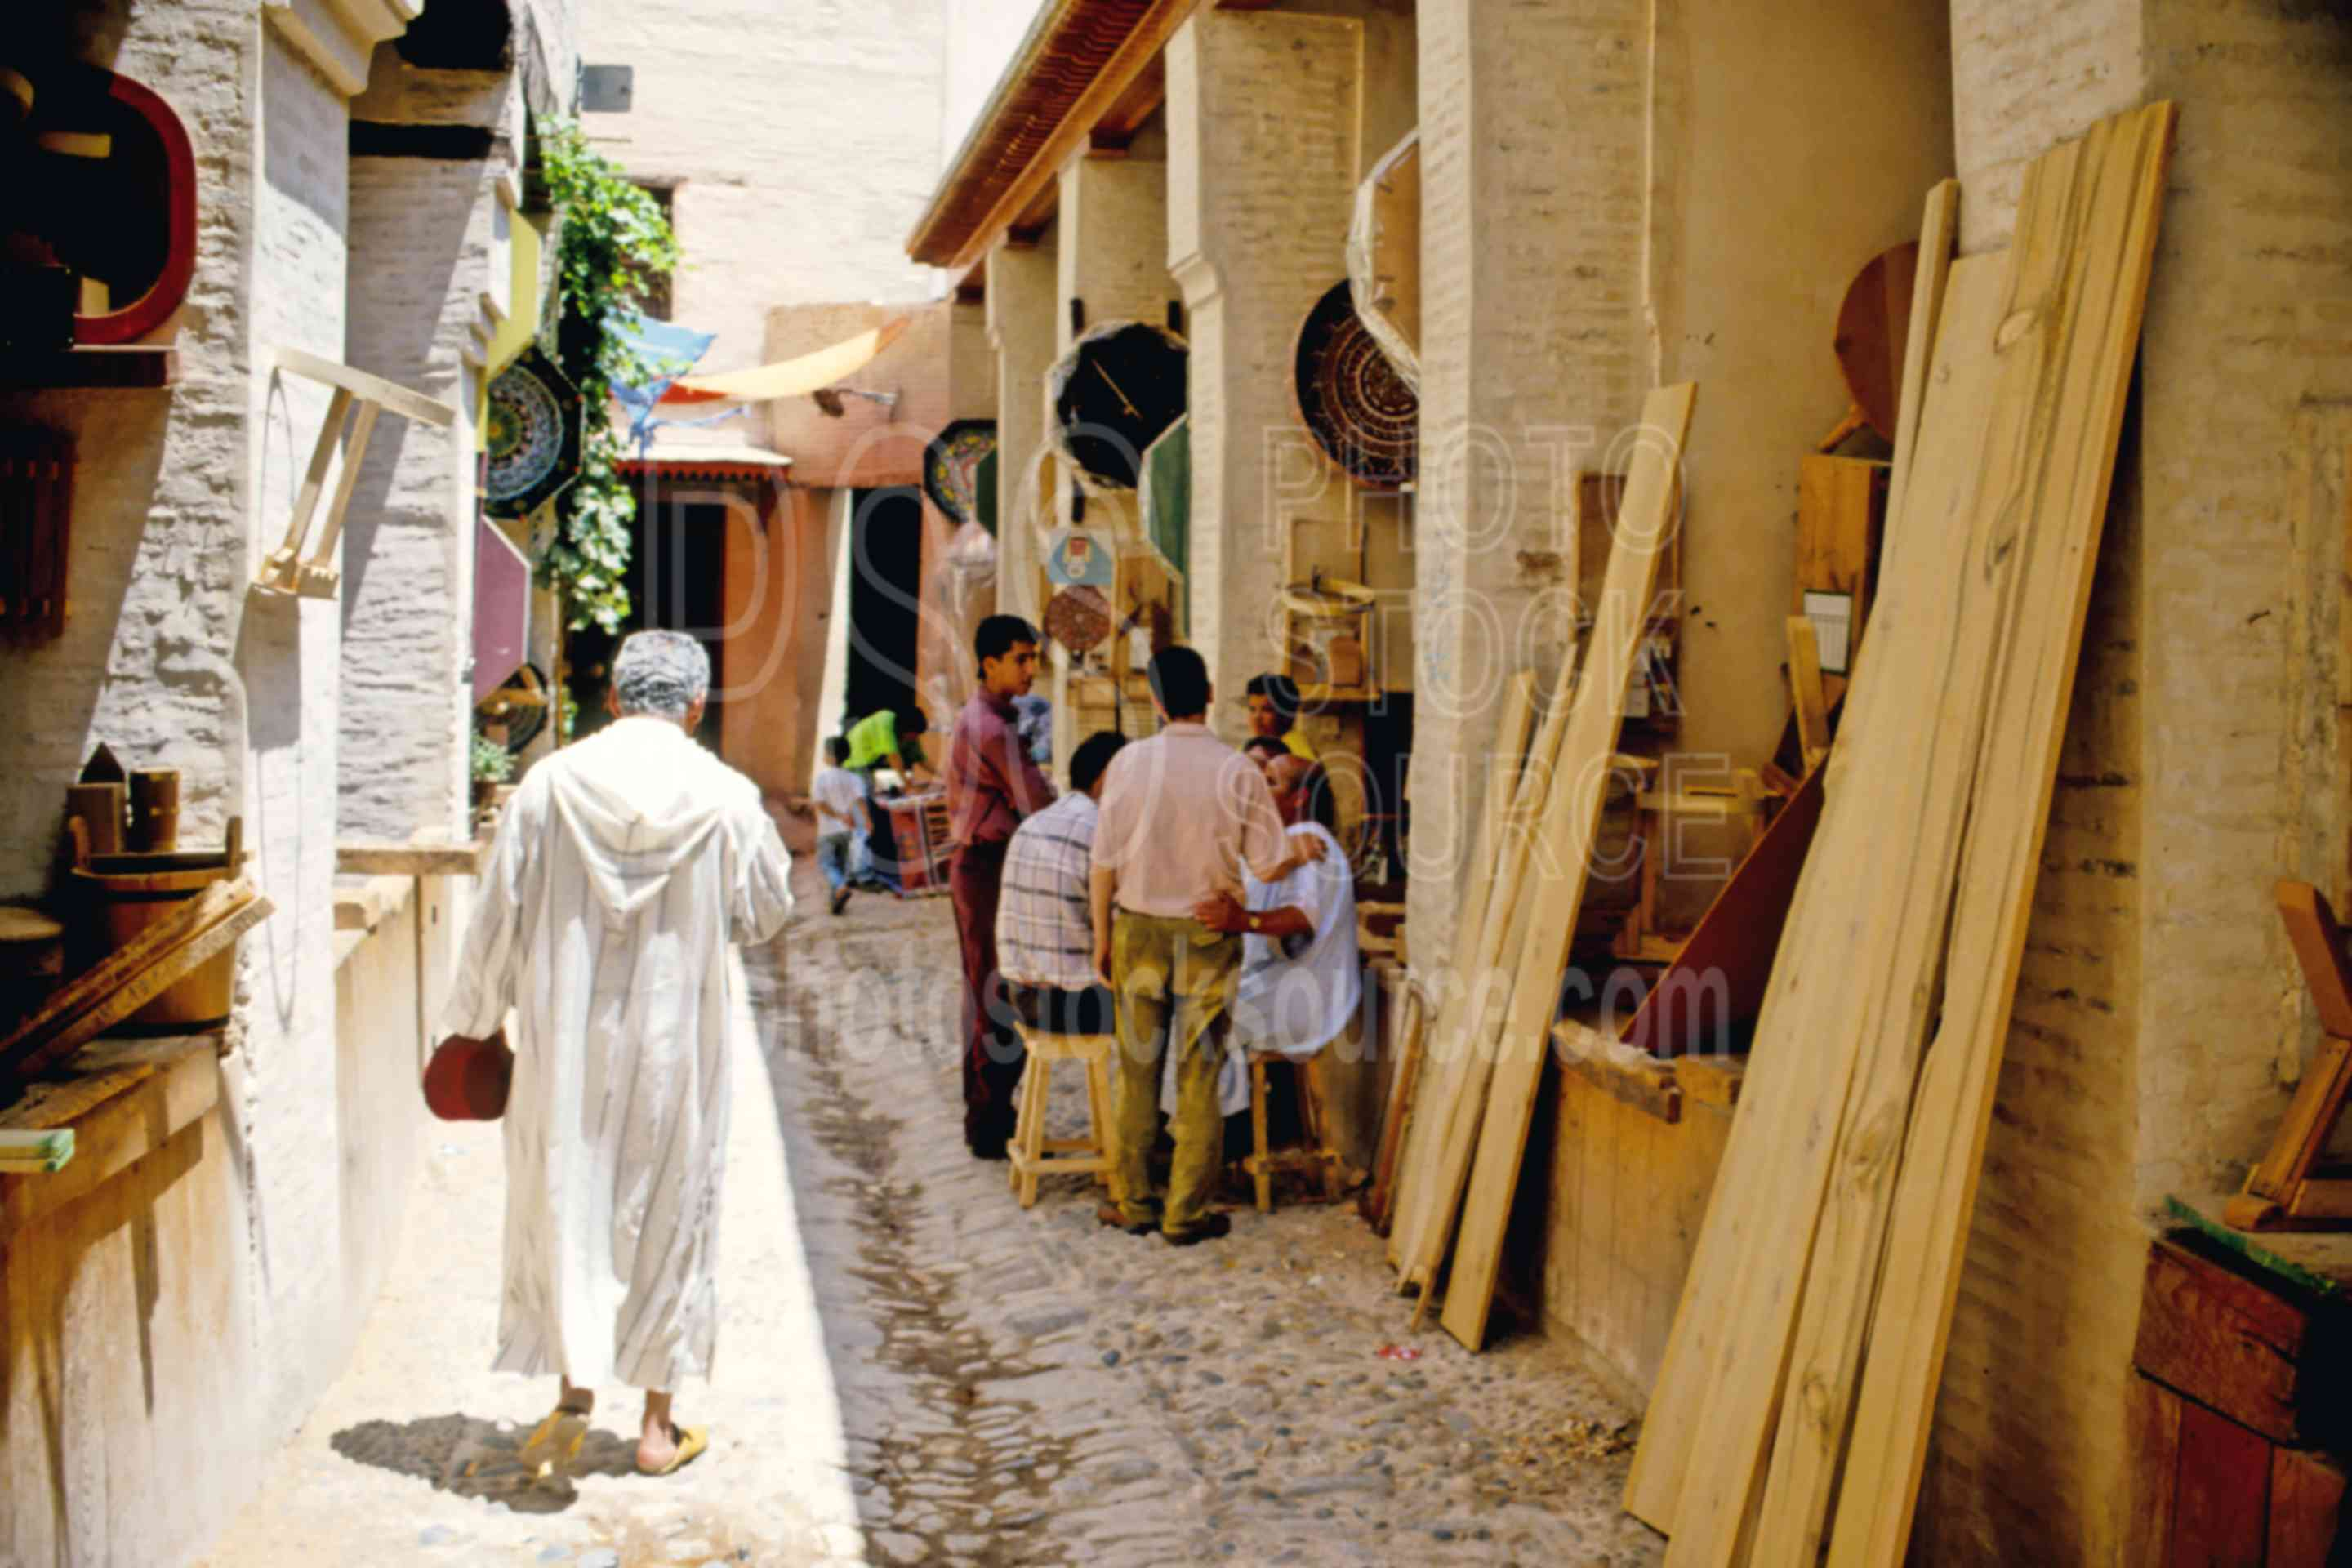 Wood Workers Market,carpenter,fezs,wood,work,worker,morocco markets,cargo